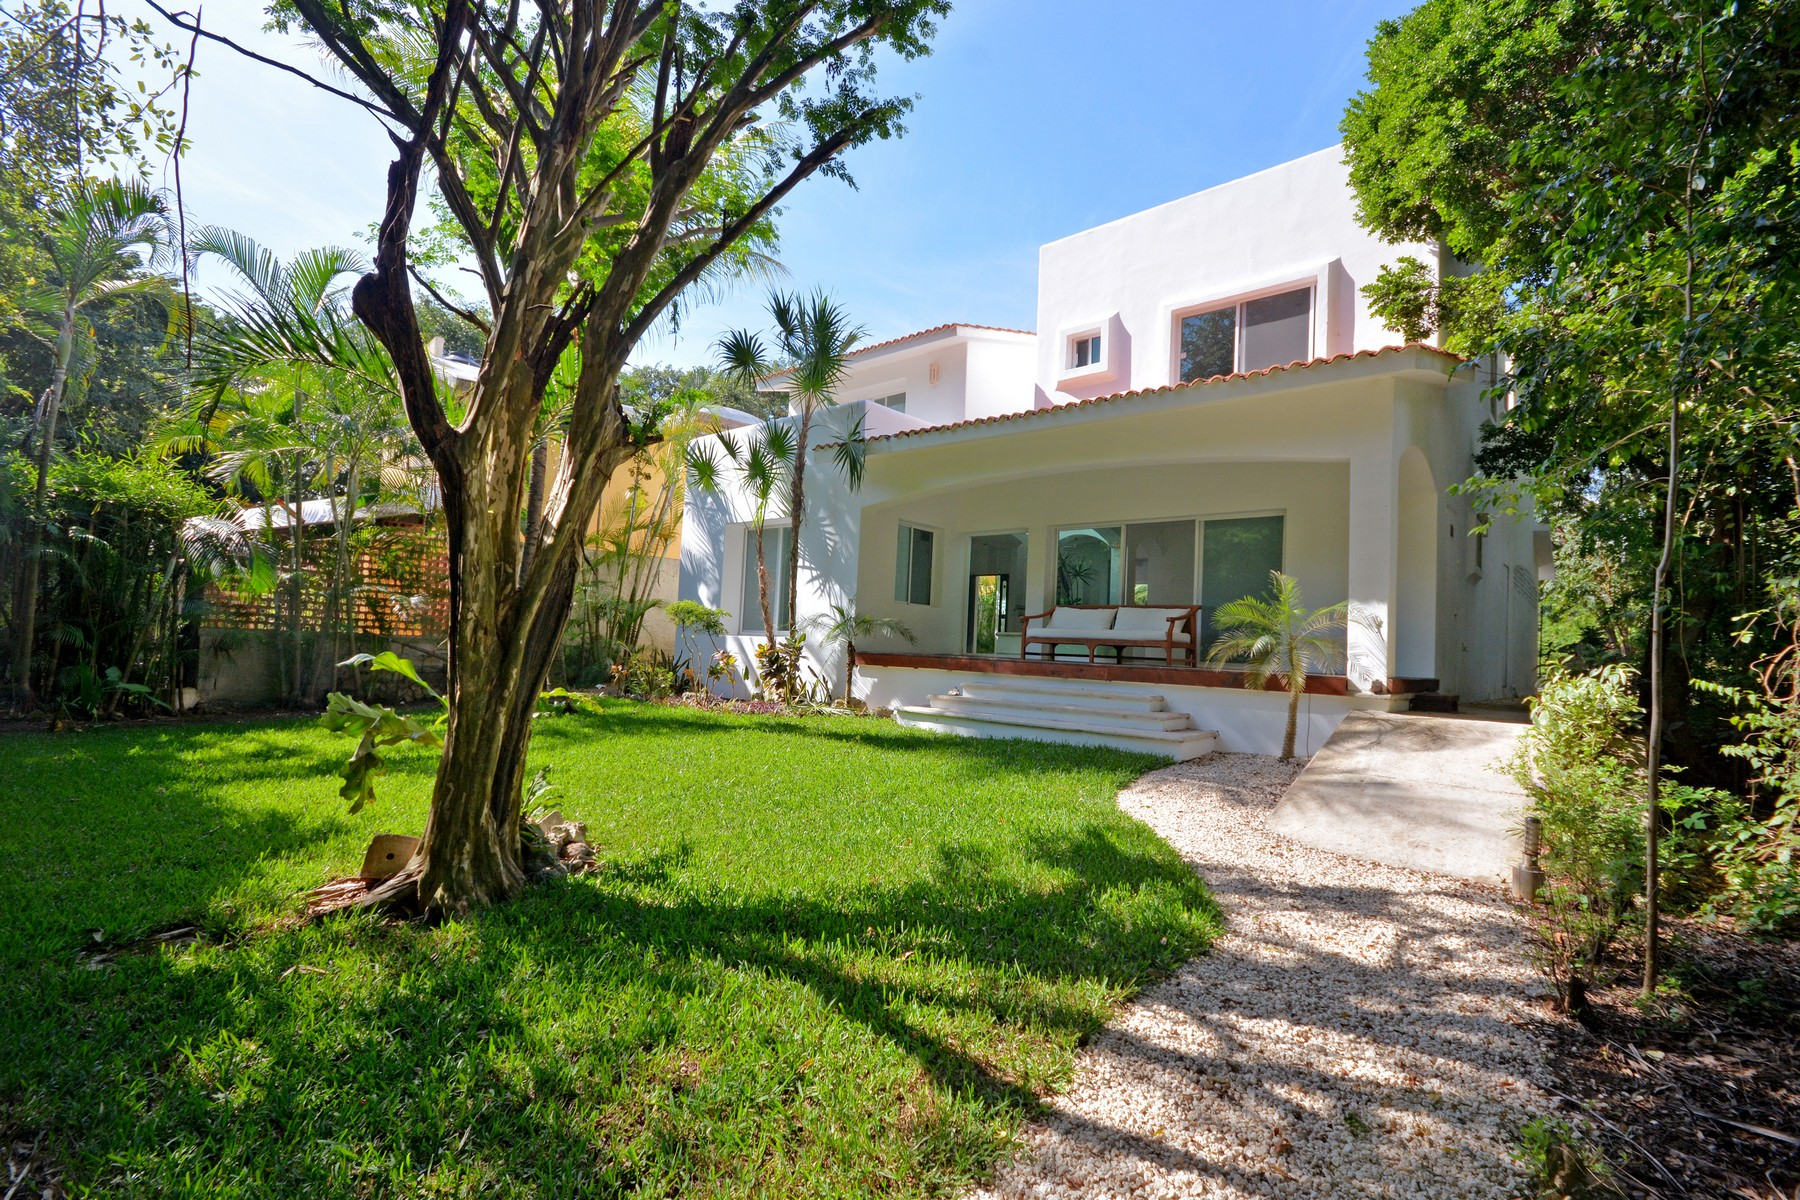 Additional photo for property listing at CASA MONIQUE Club Real, Playacar Fase II Lote 259 Playa Del Carmen, Quintana Roo 77710 Mexico